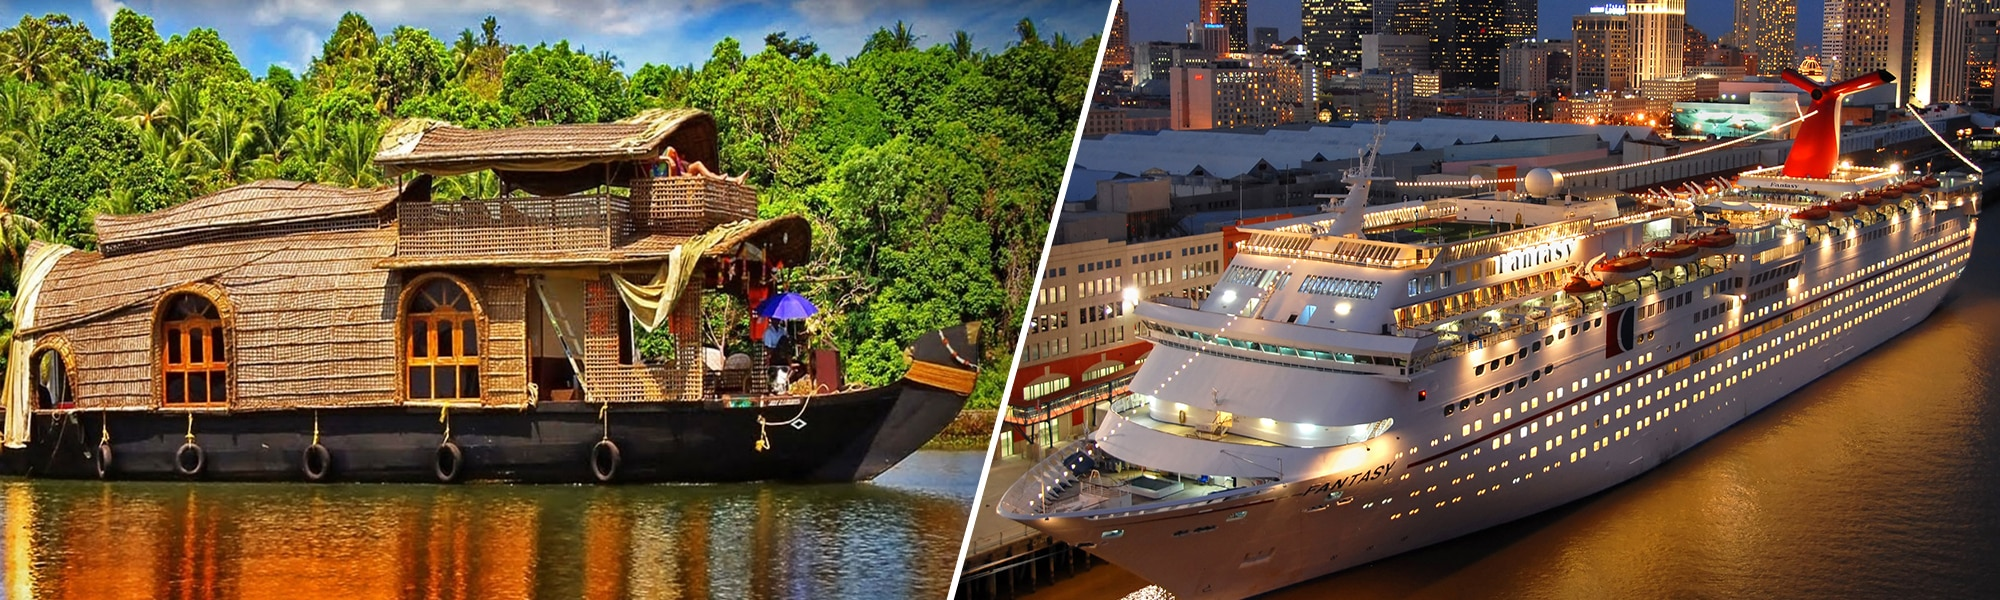 Cruise & Houseboat Tour Packages